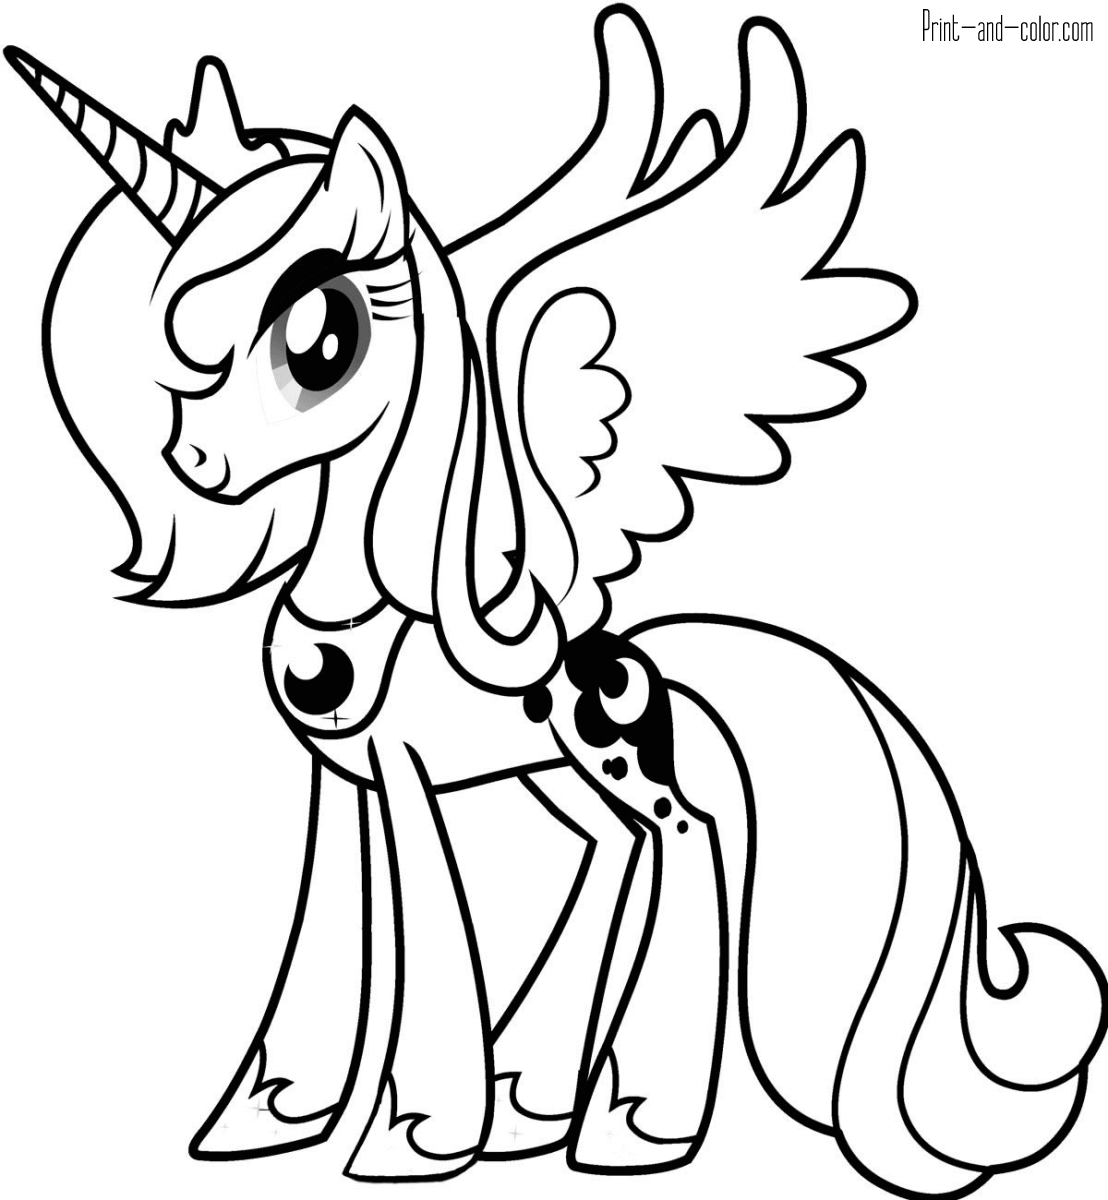 printable my little pony coloring pages my little pony coloring pages print and colorcom coloring printable pages my pony little